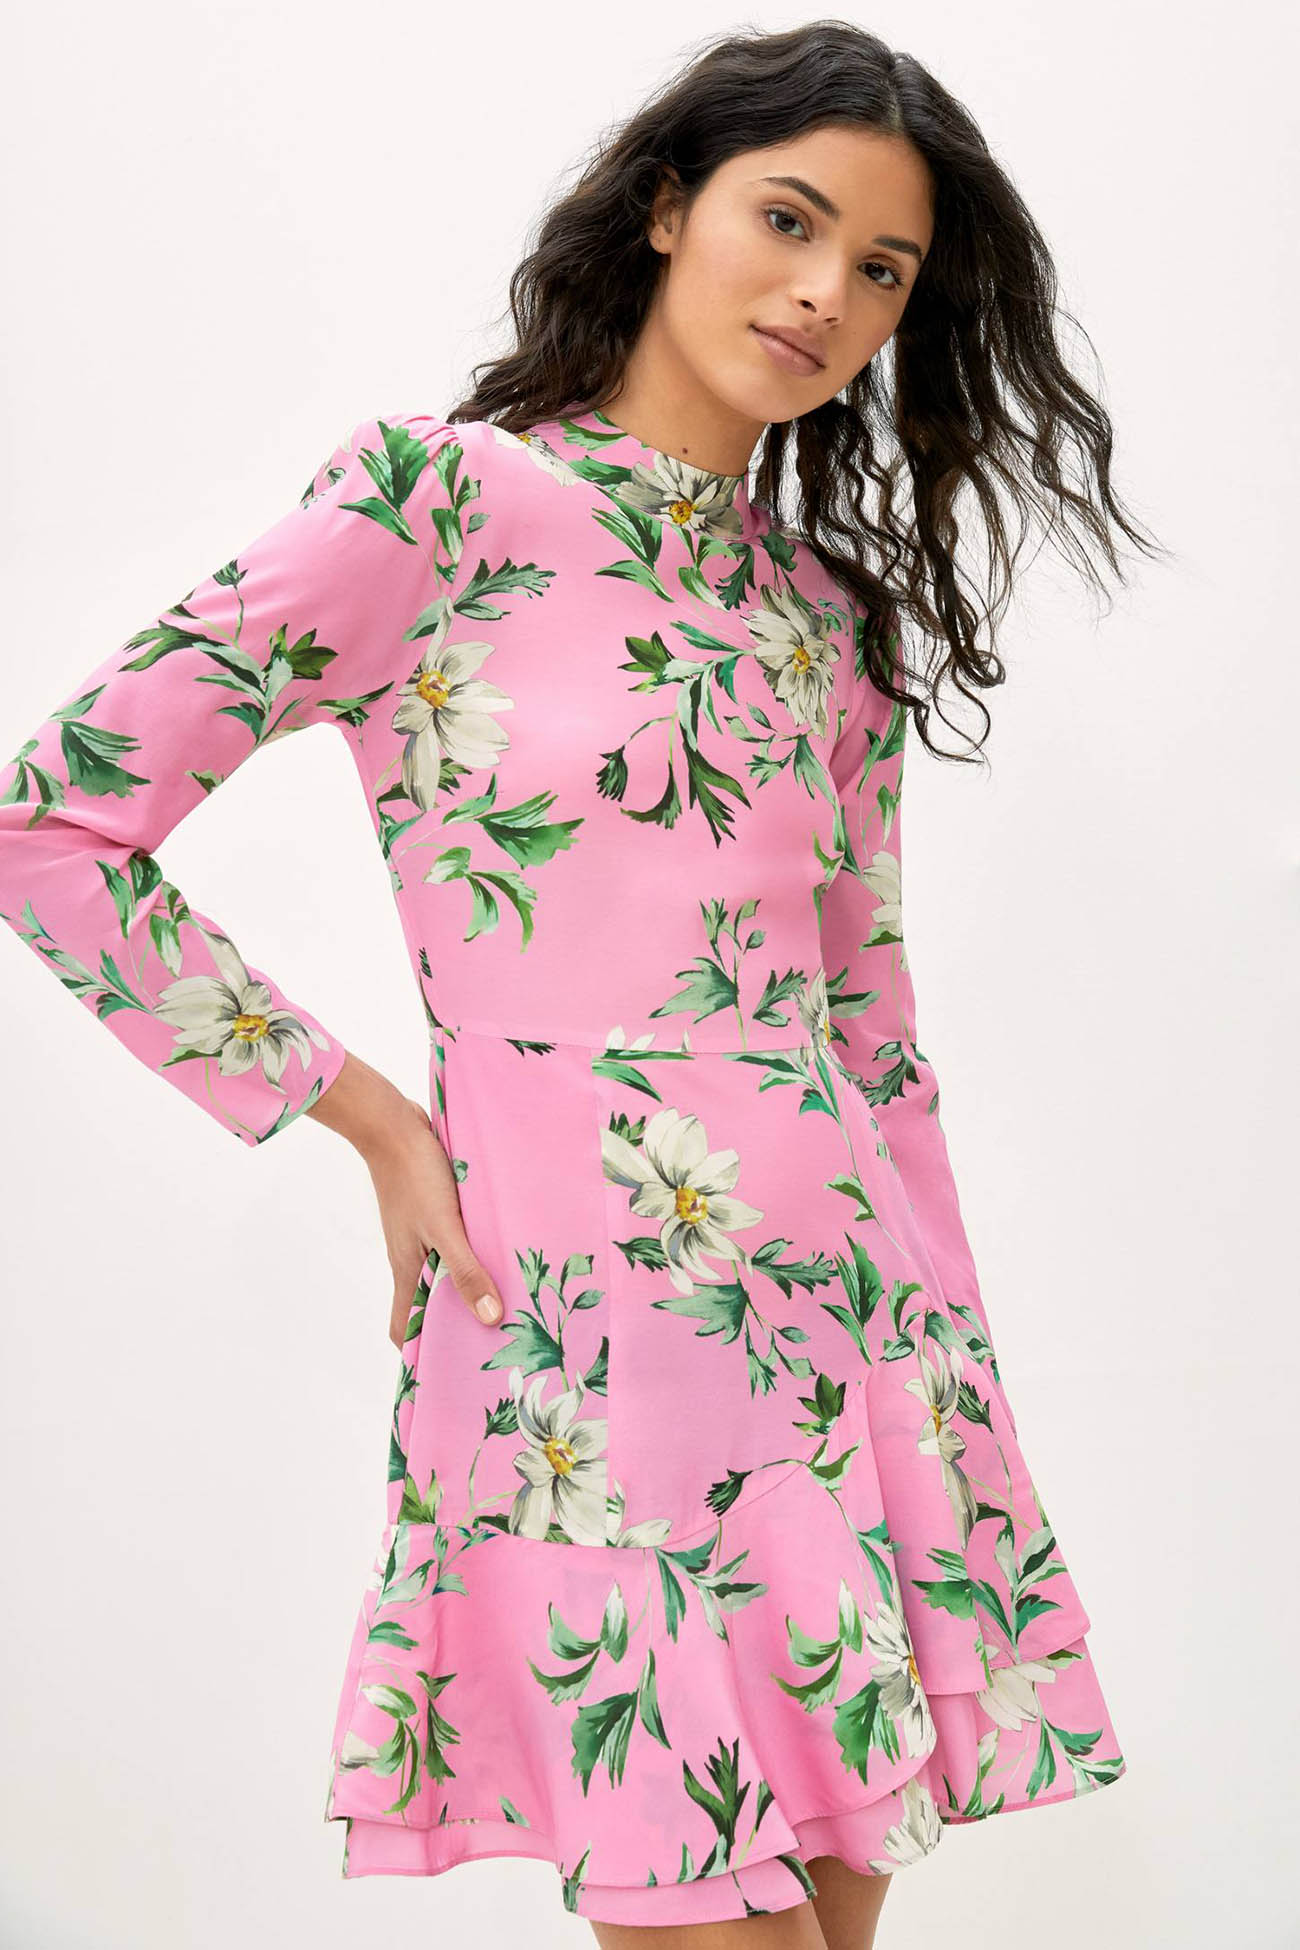 bright pink floral dress for a spring wedding